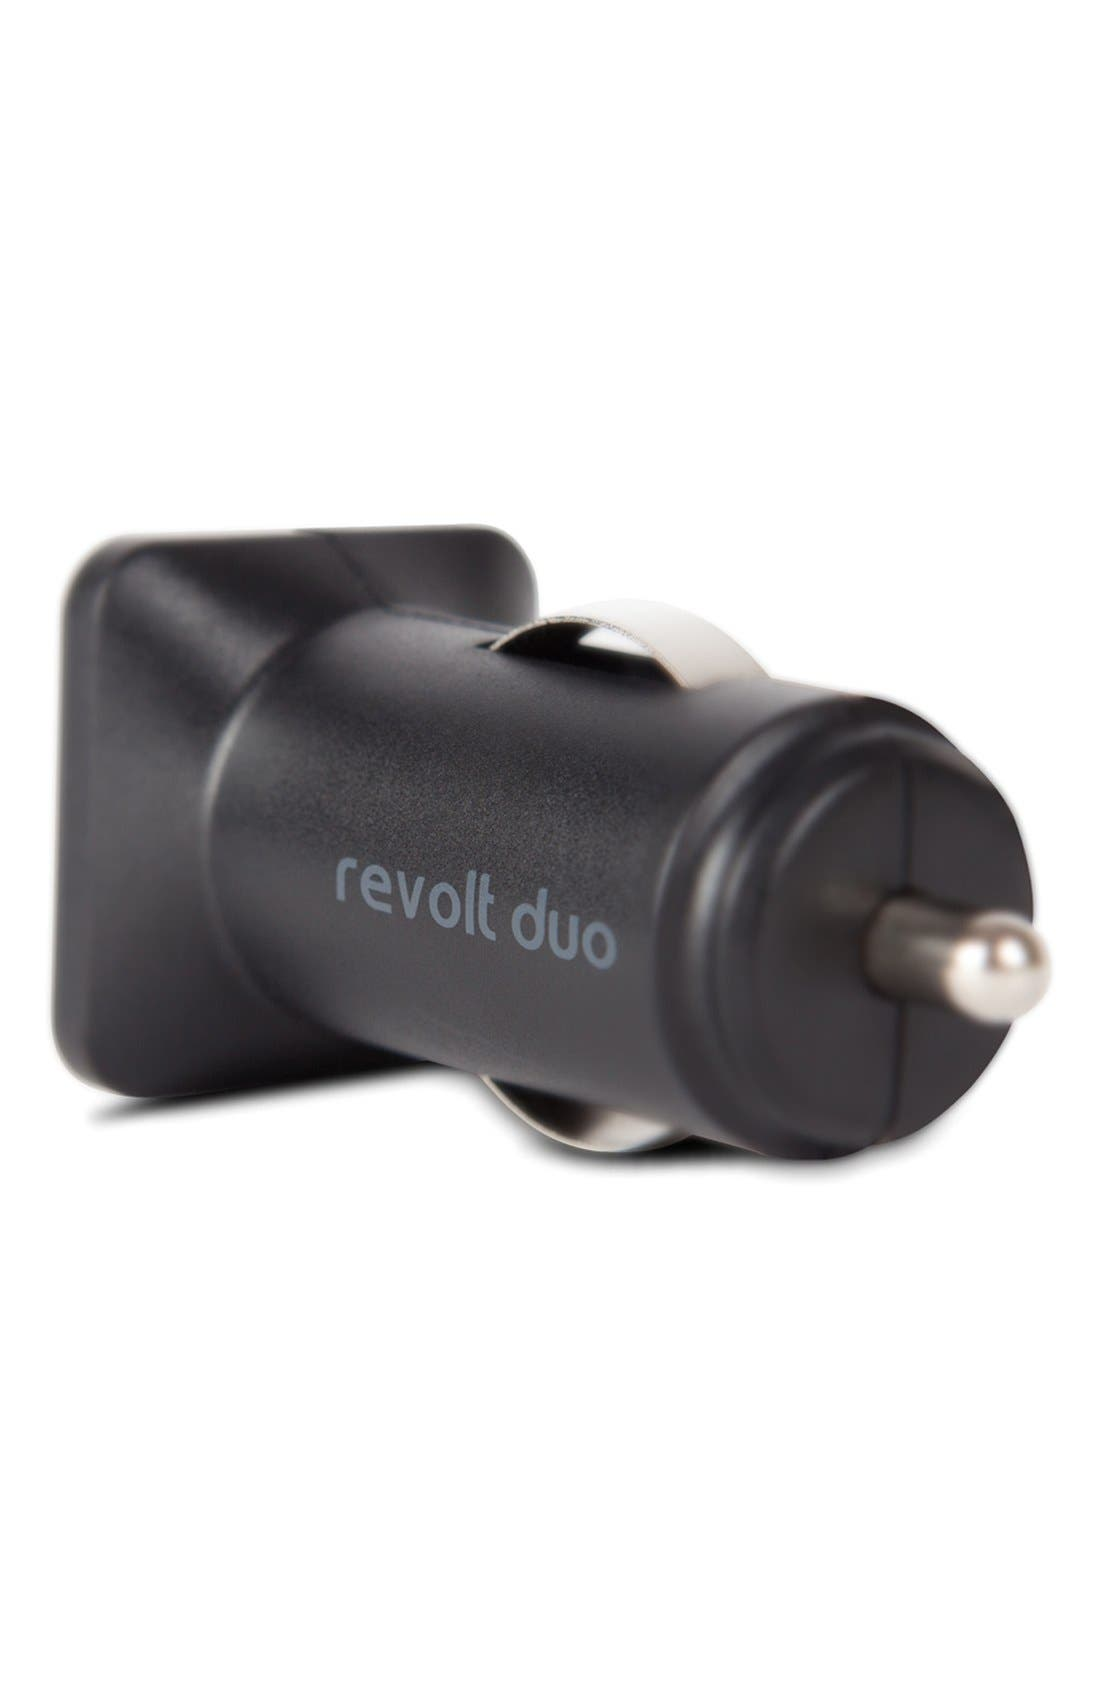 Alternate Image 4  - Moshi 'Revolt Duo' 20W USB Car Charger with Lightning Cable